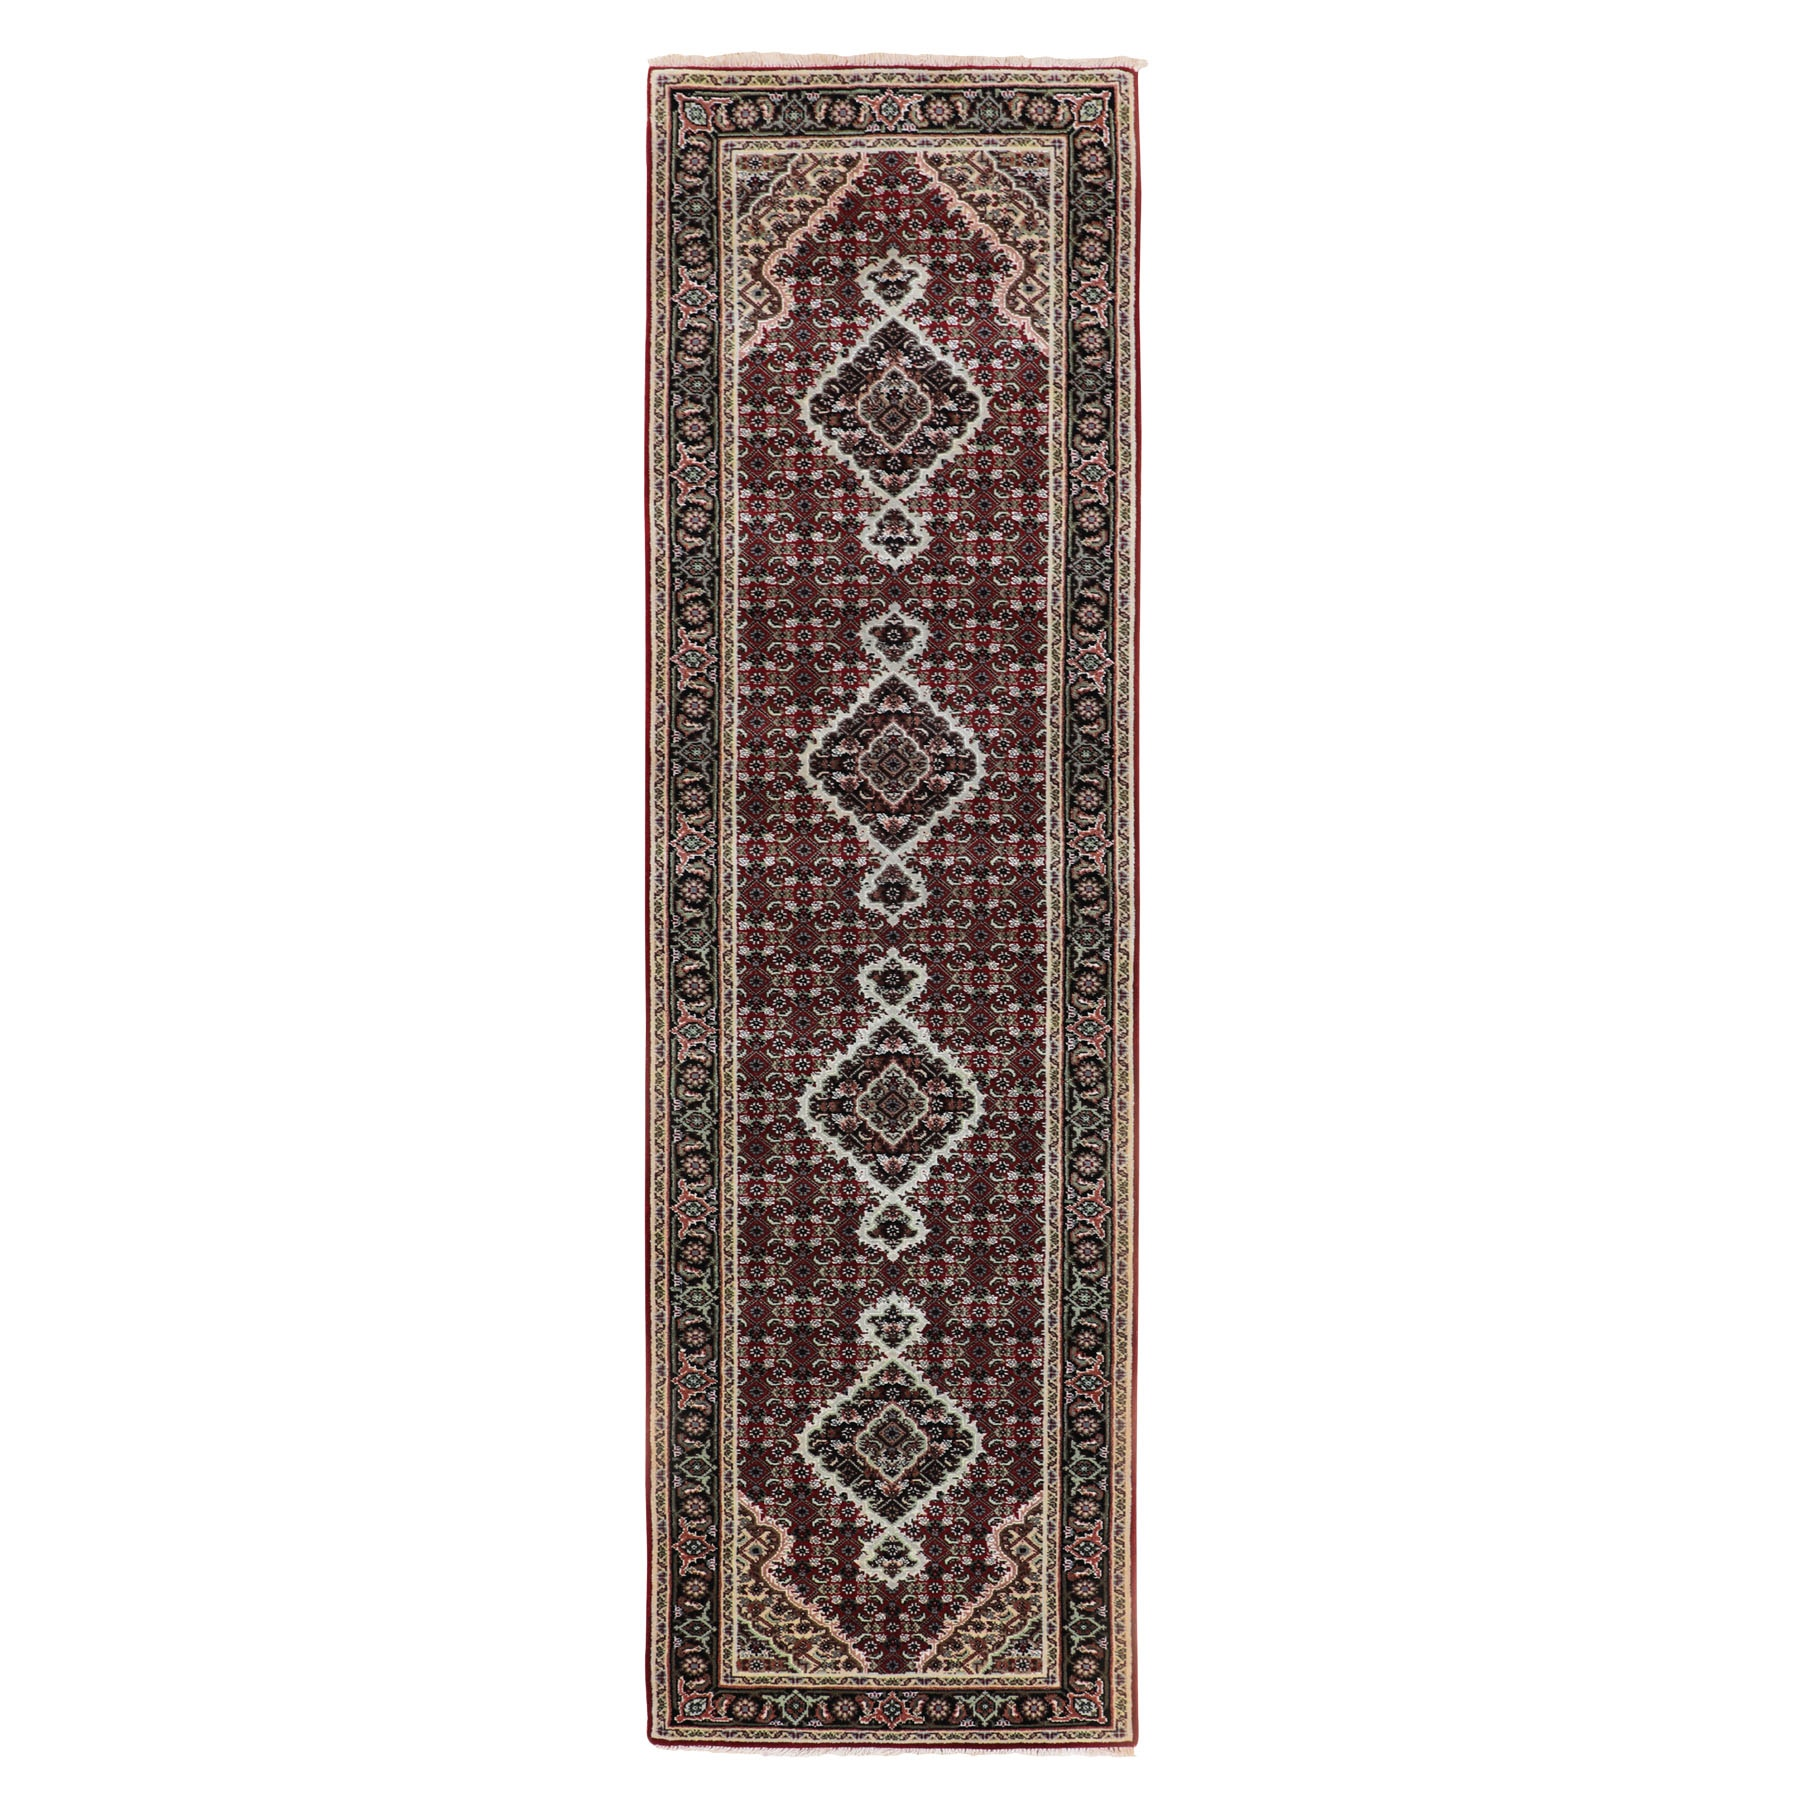 Pirniakan Collection Hand Knotted Red Rug No: 01116642